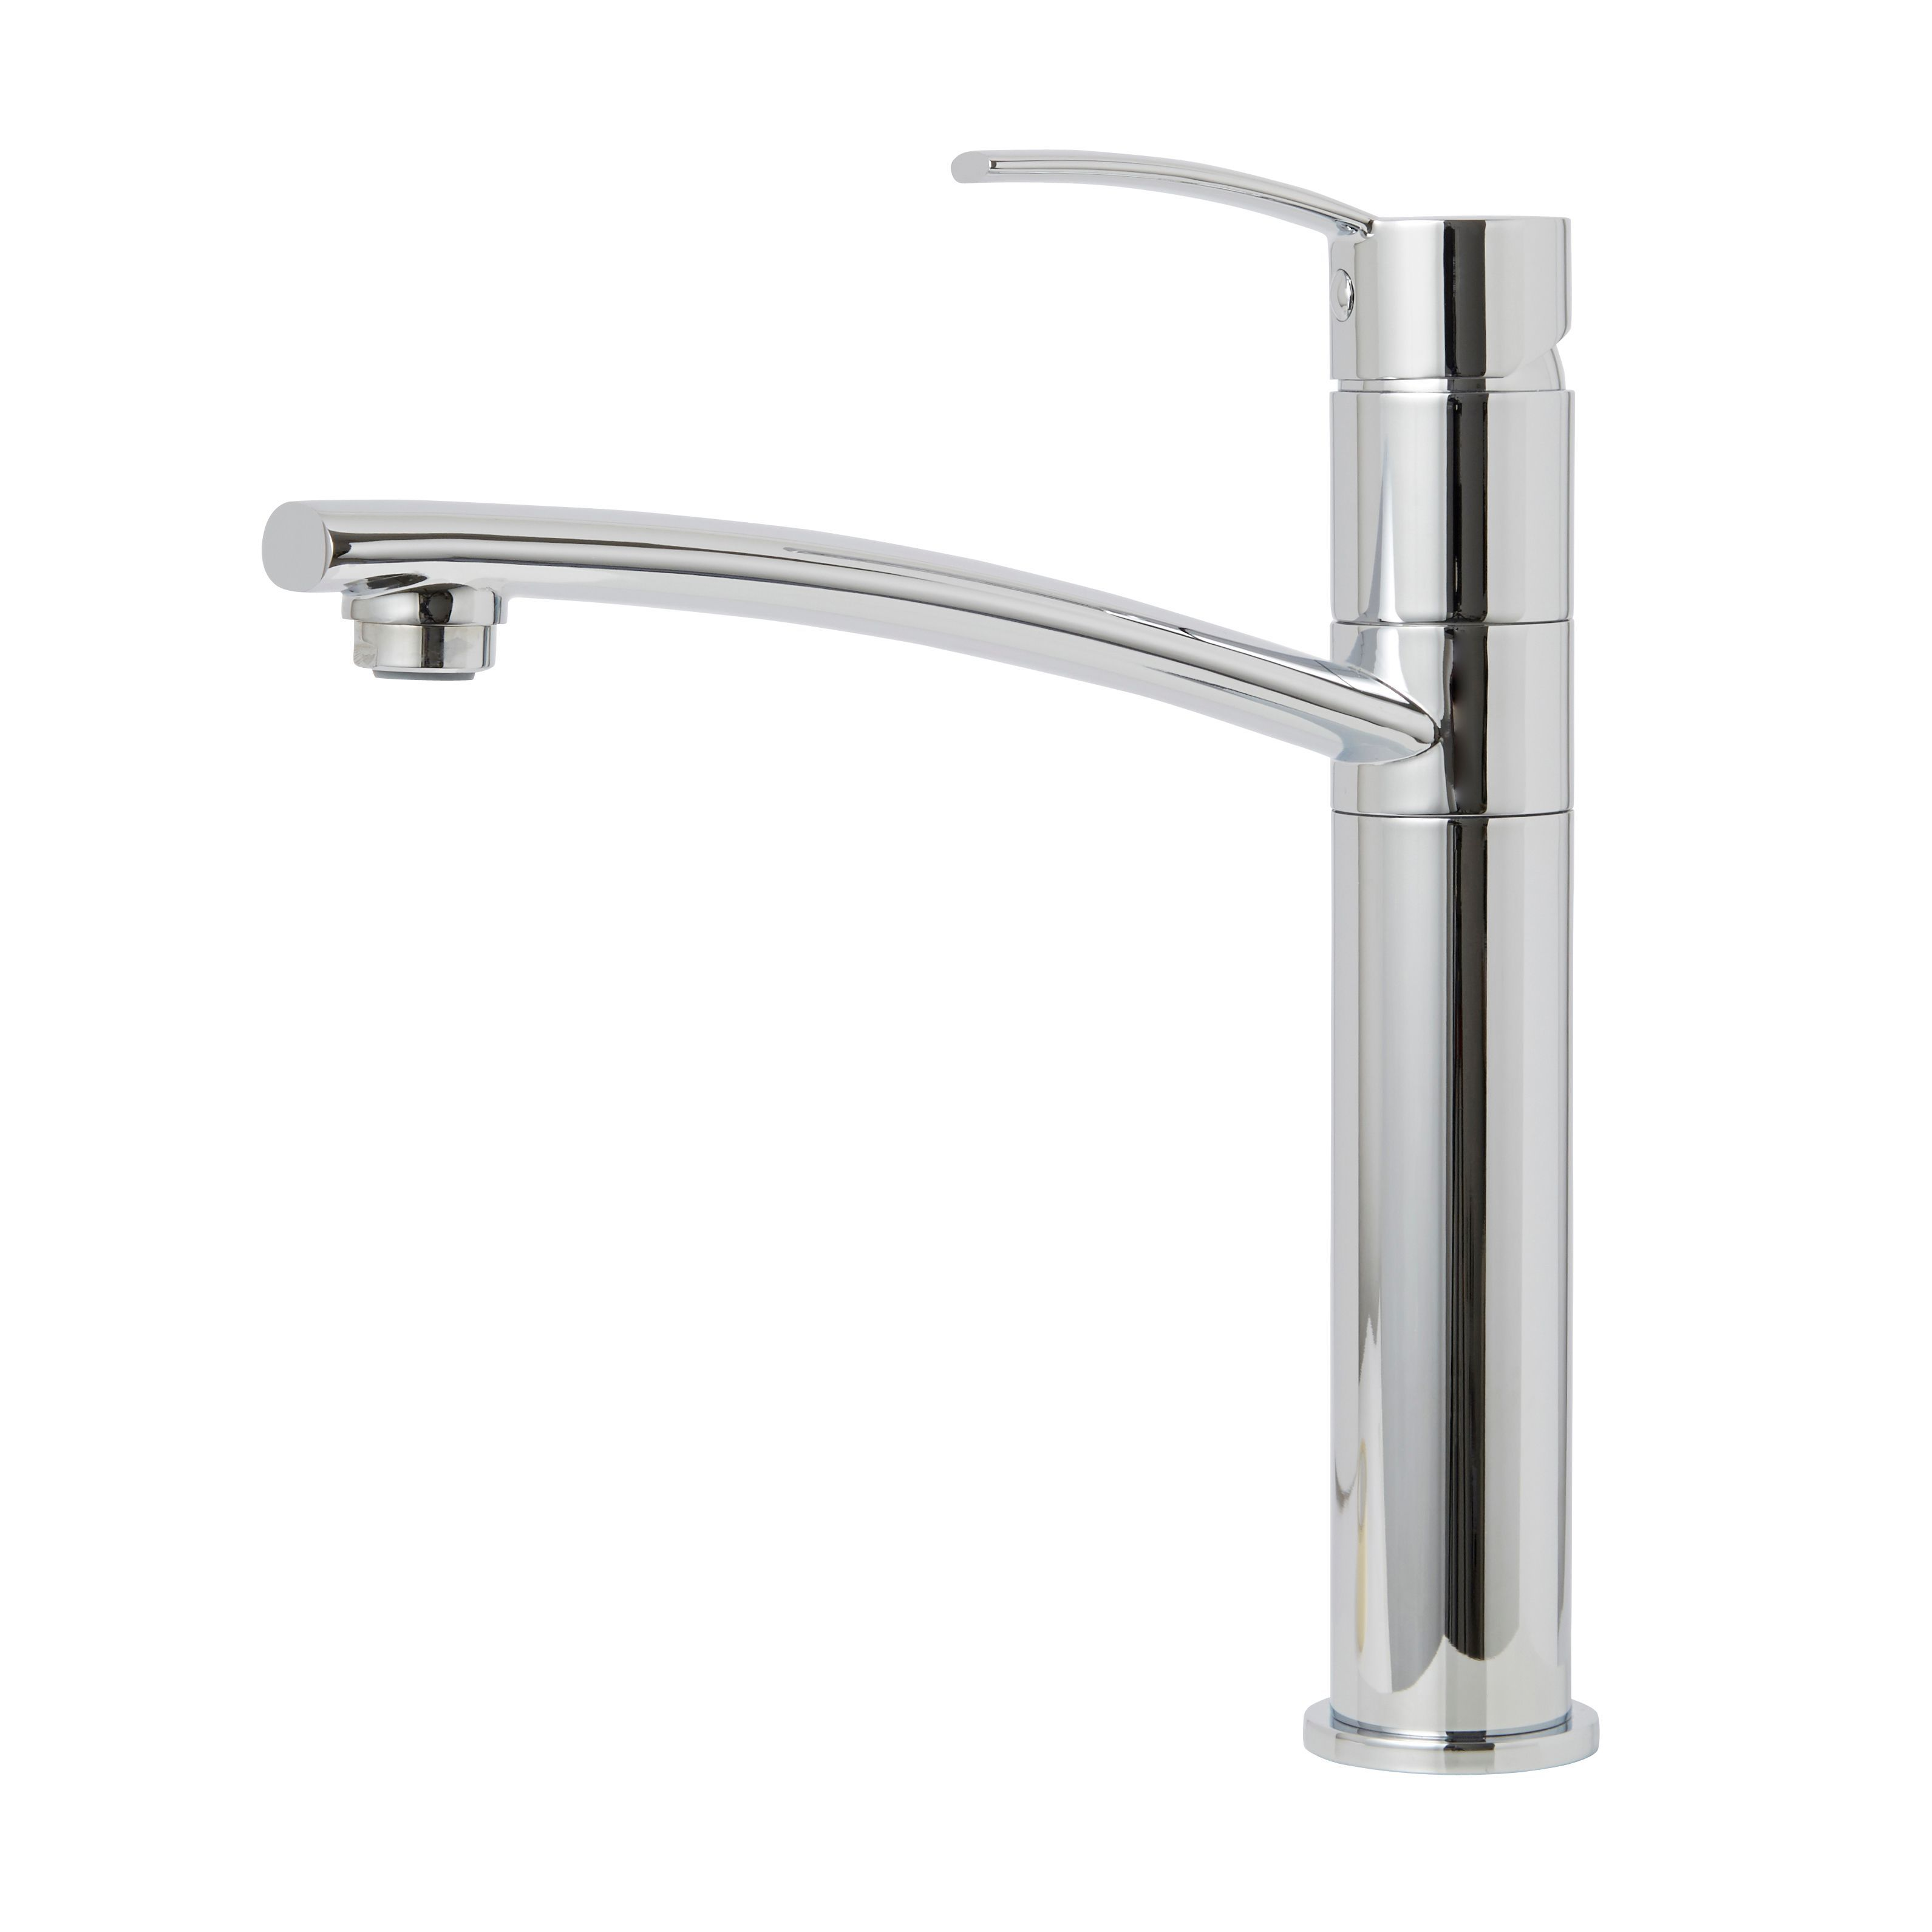 Cooke /& Lewis Tolmer Chrome finish Kitchen Top lever tap